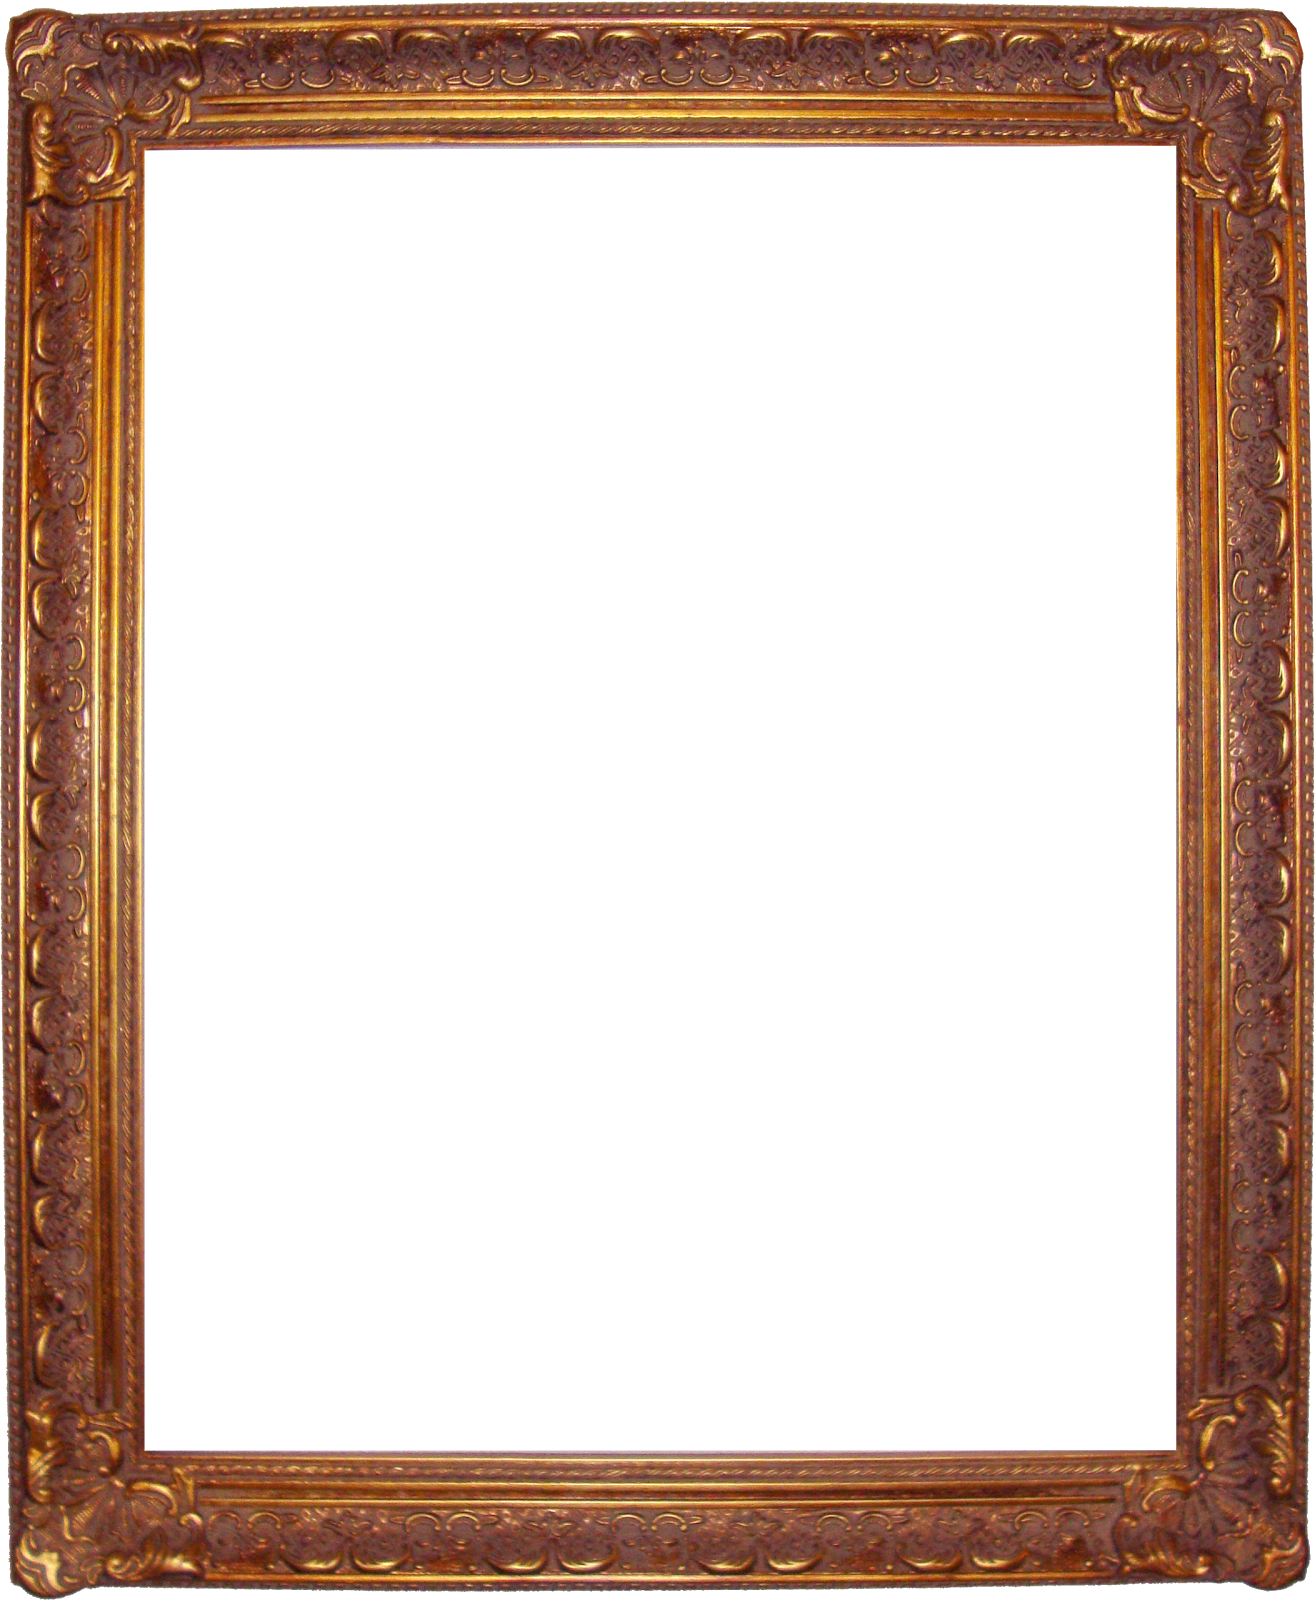 Vintage Frame Png Available In Different Size #30398 - Free